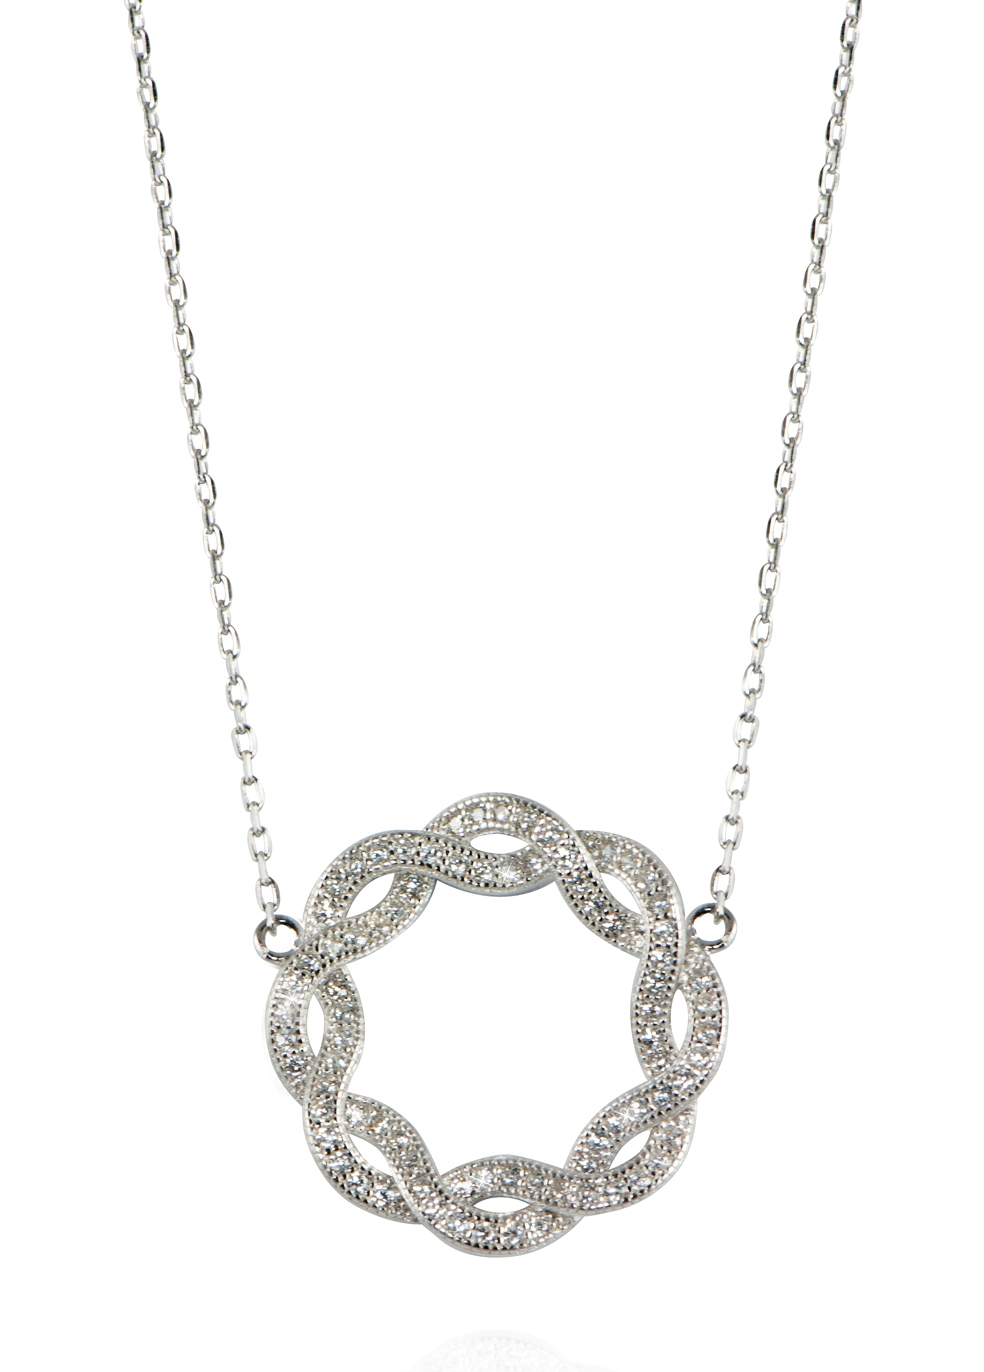 APPLES & FIGS Eternity Serpent Necklace